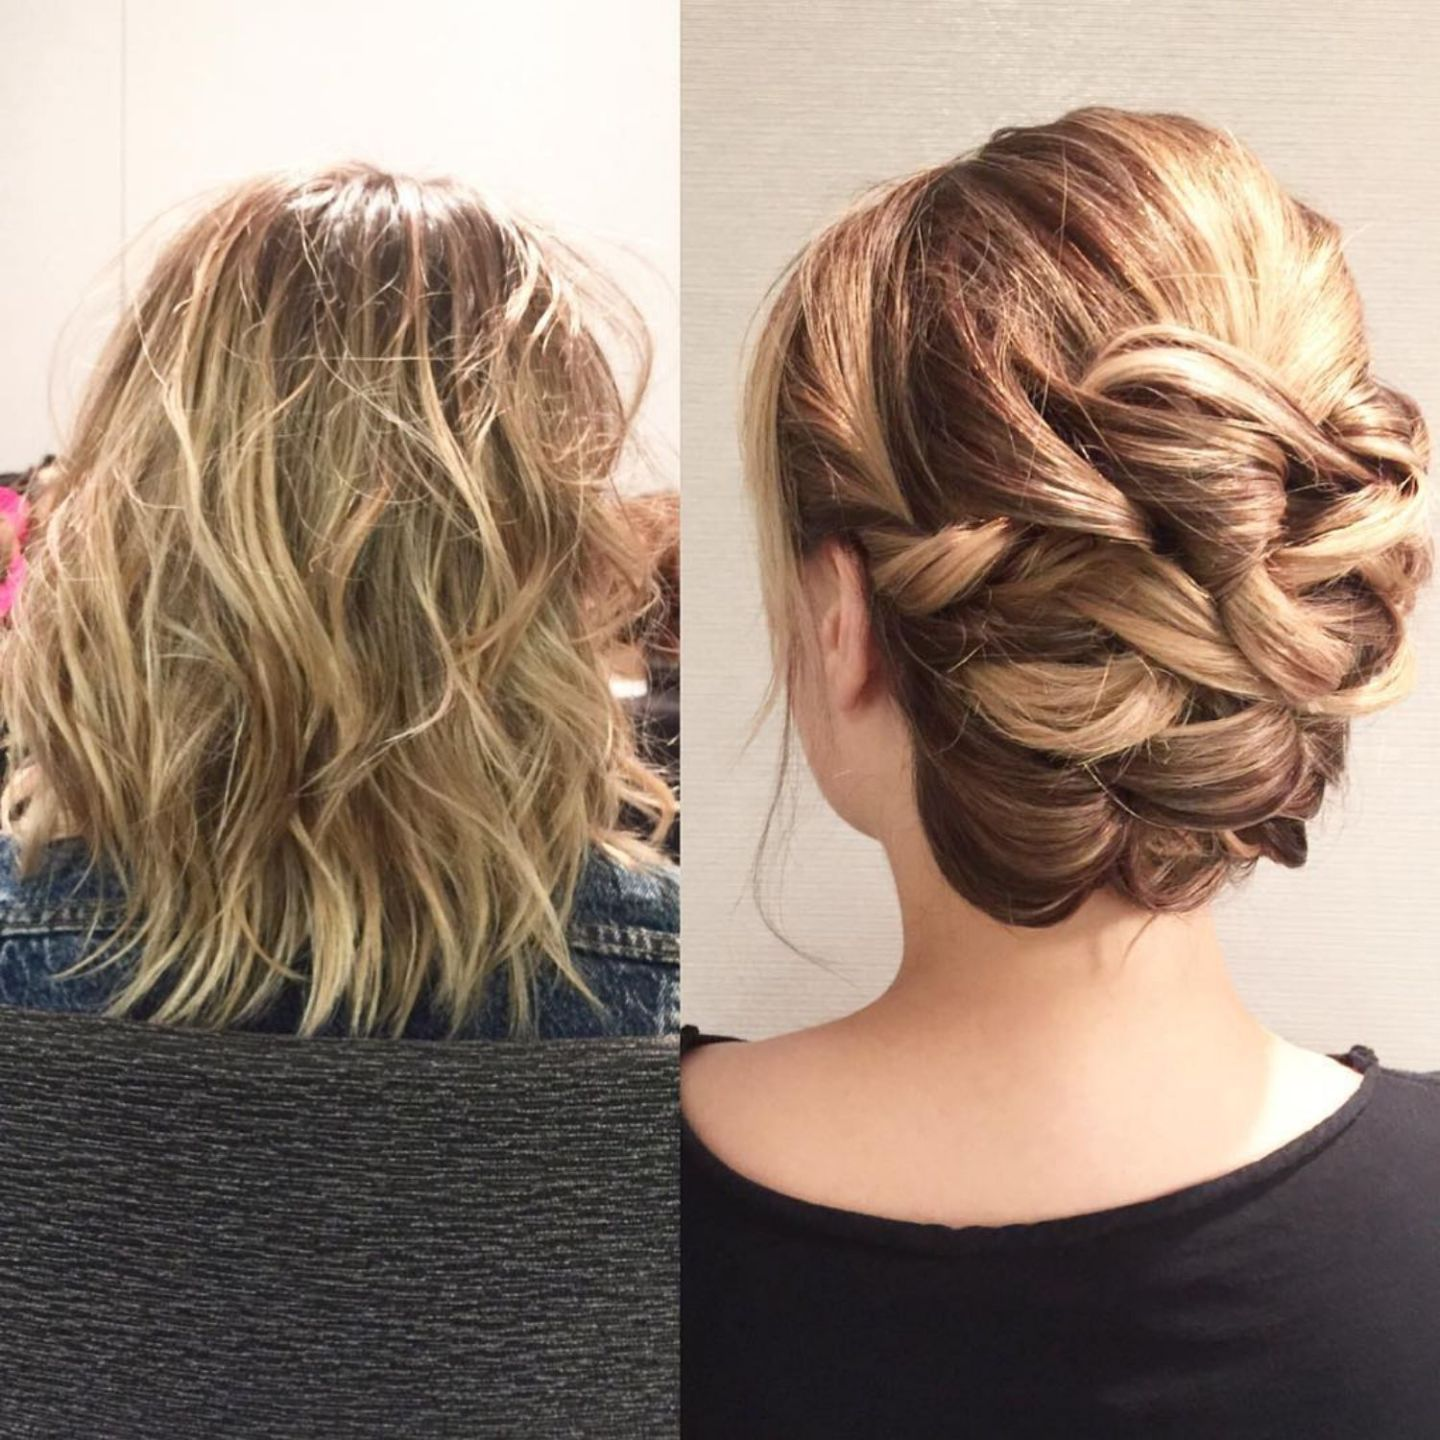 Medium Length Hairstyles For Thick Hair Updo 2021